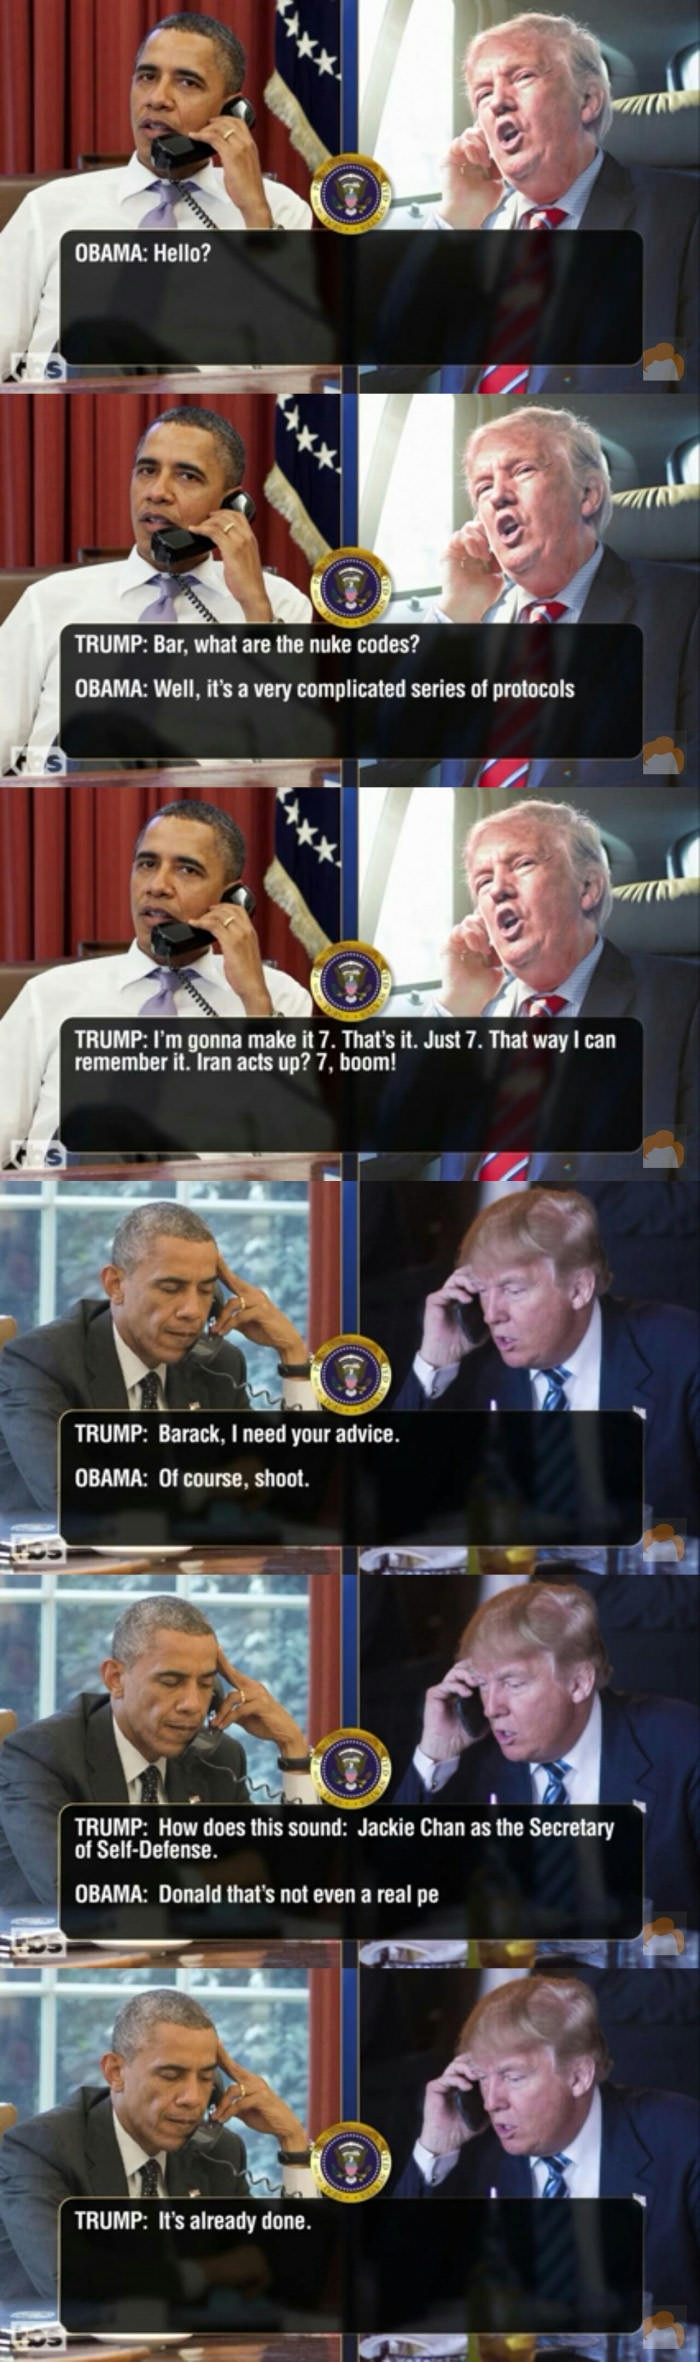 Leaked transcripts of Trump & Obama pt.5